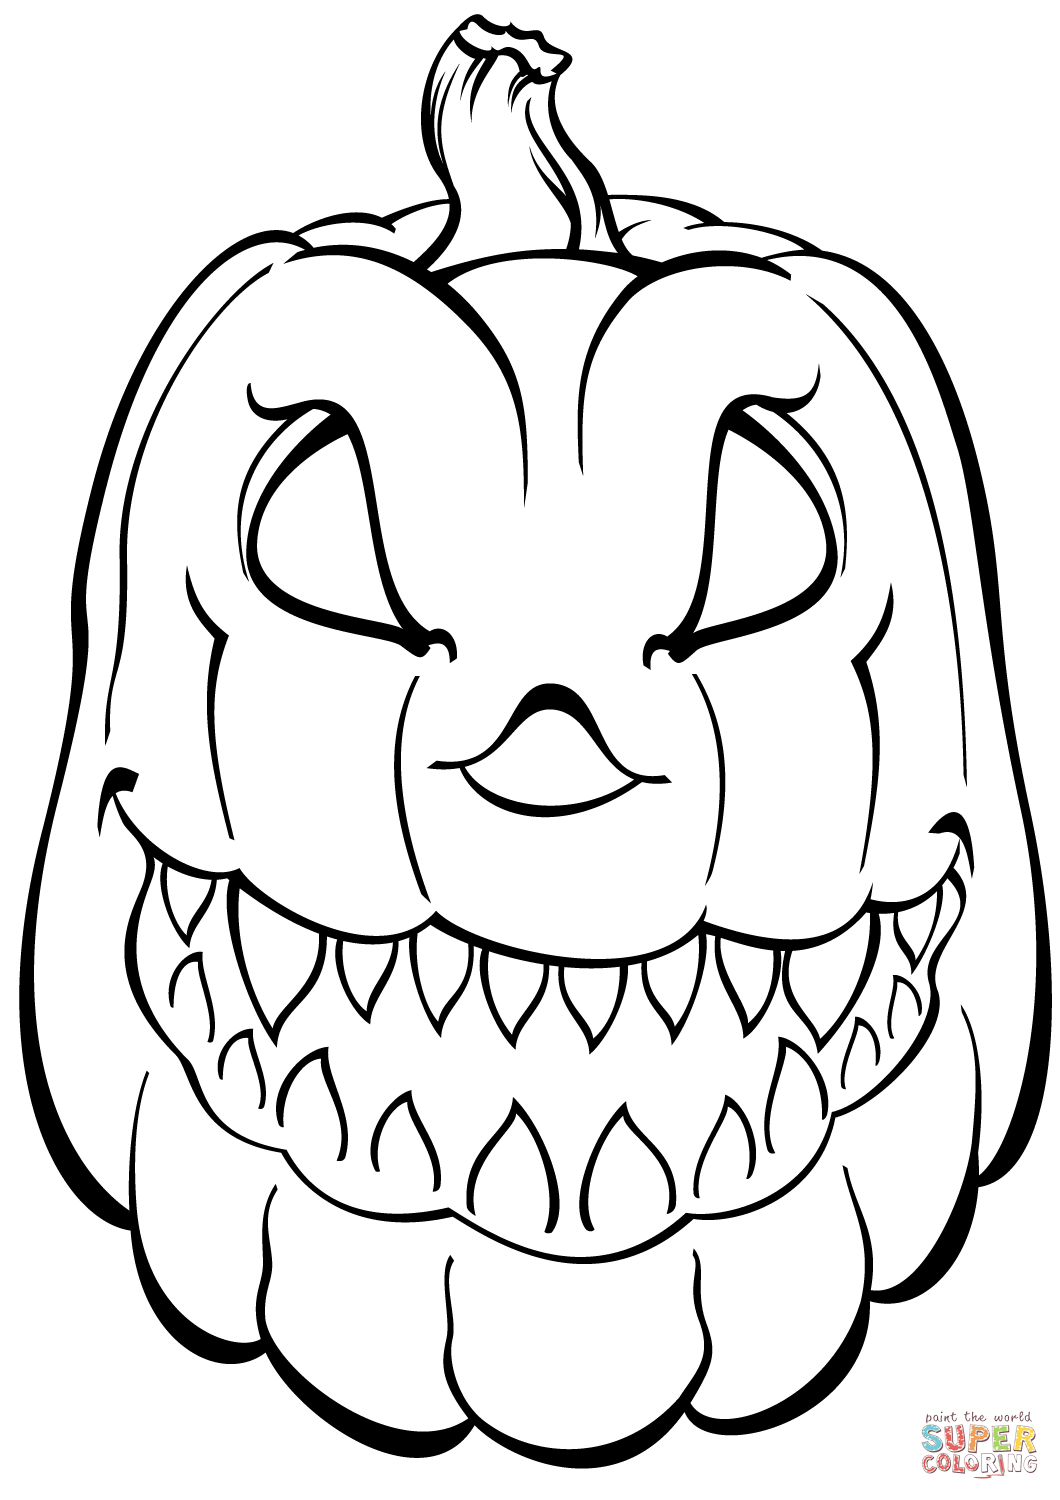 1060x1500 Scary Pumpkin Coloring Page Free Printable Coloring Pages